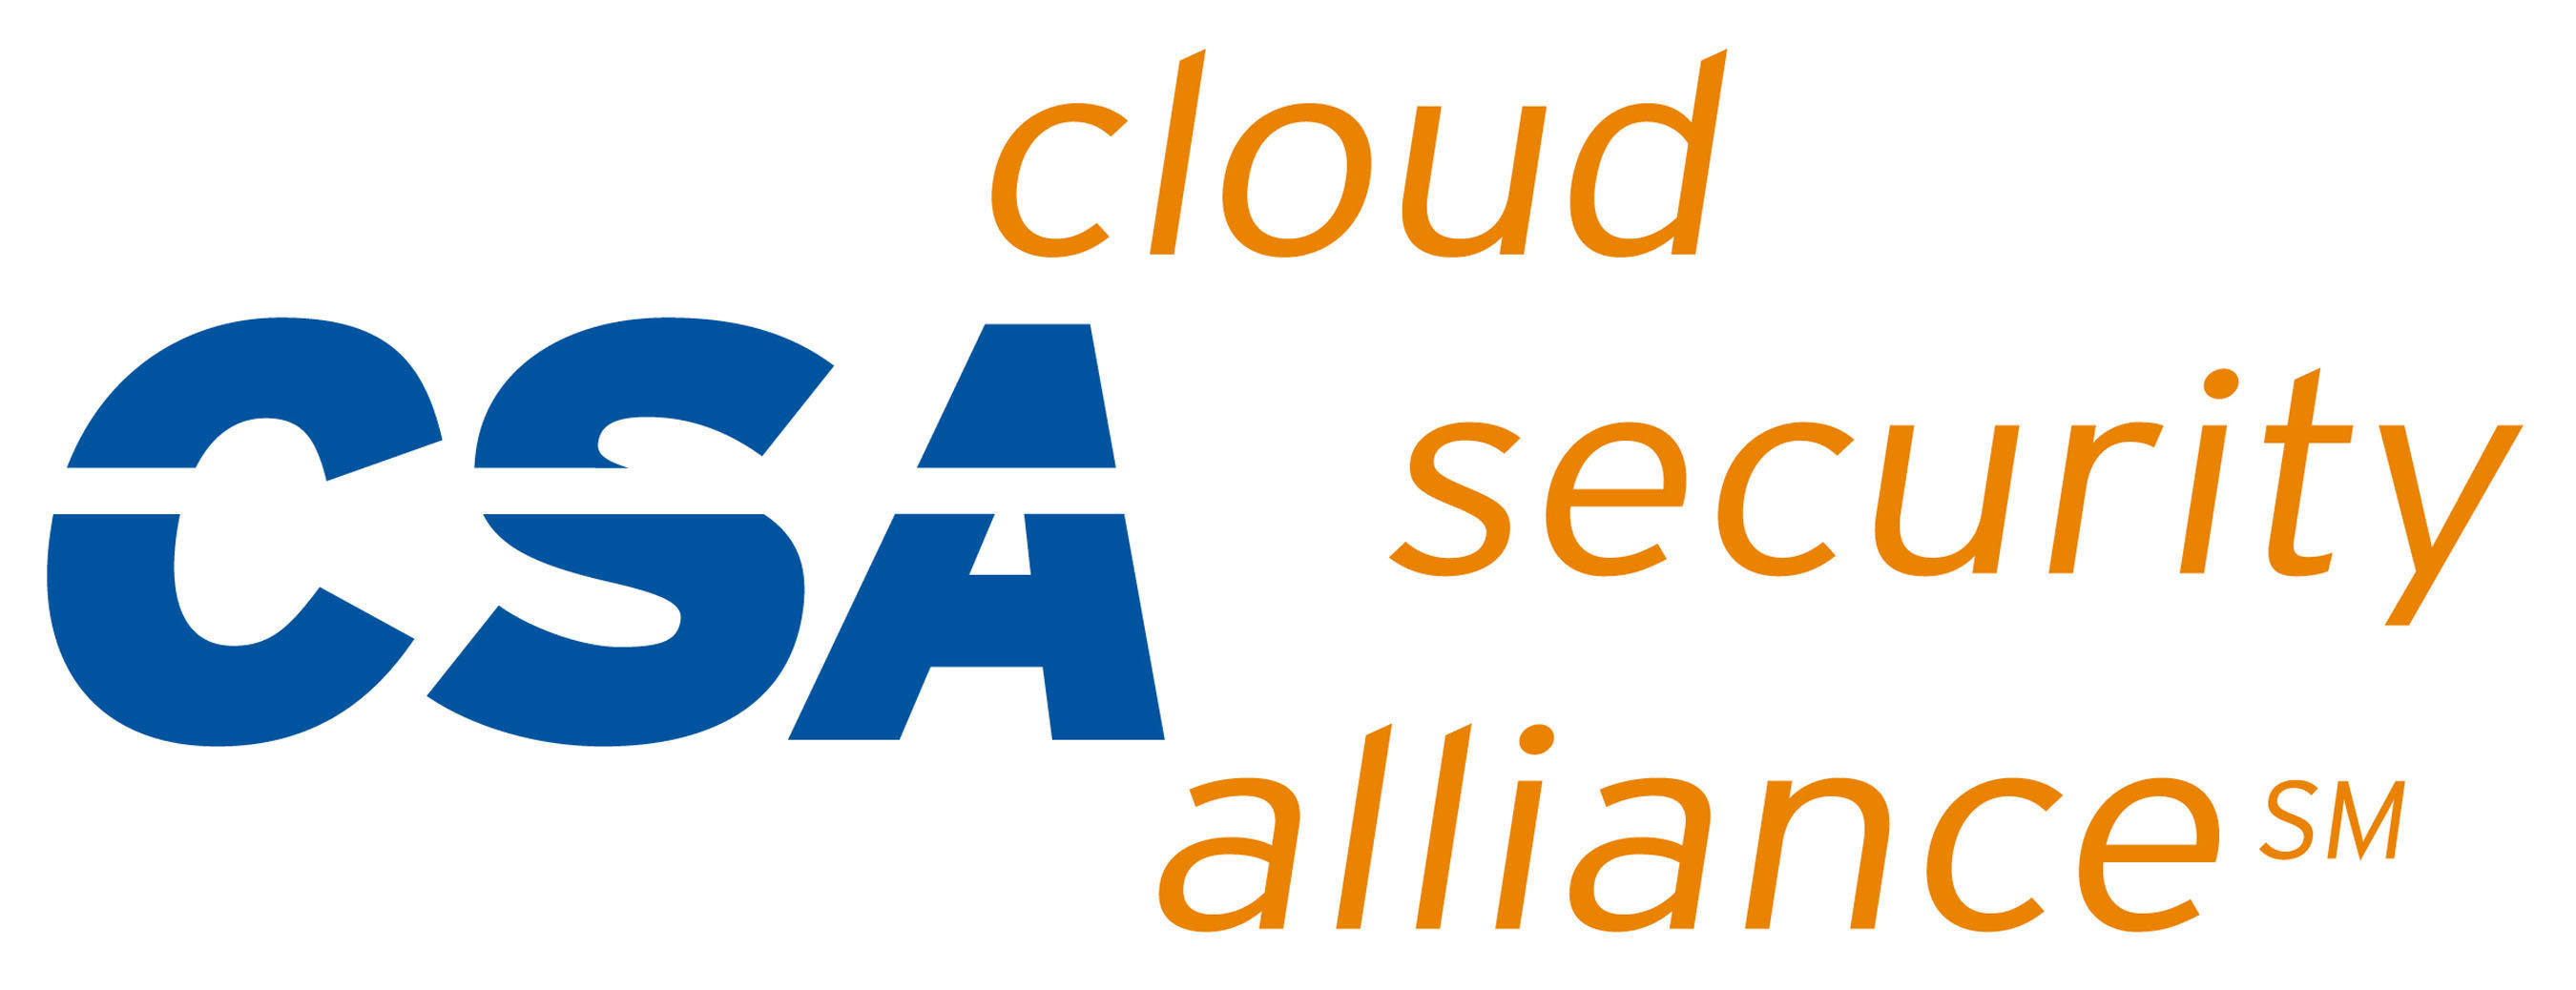 Cloud Security Alliance Logo.